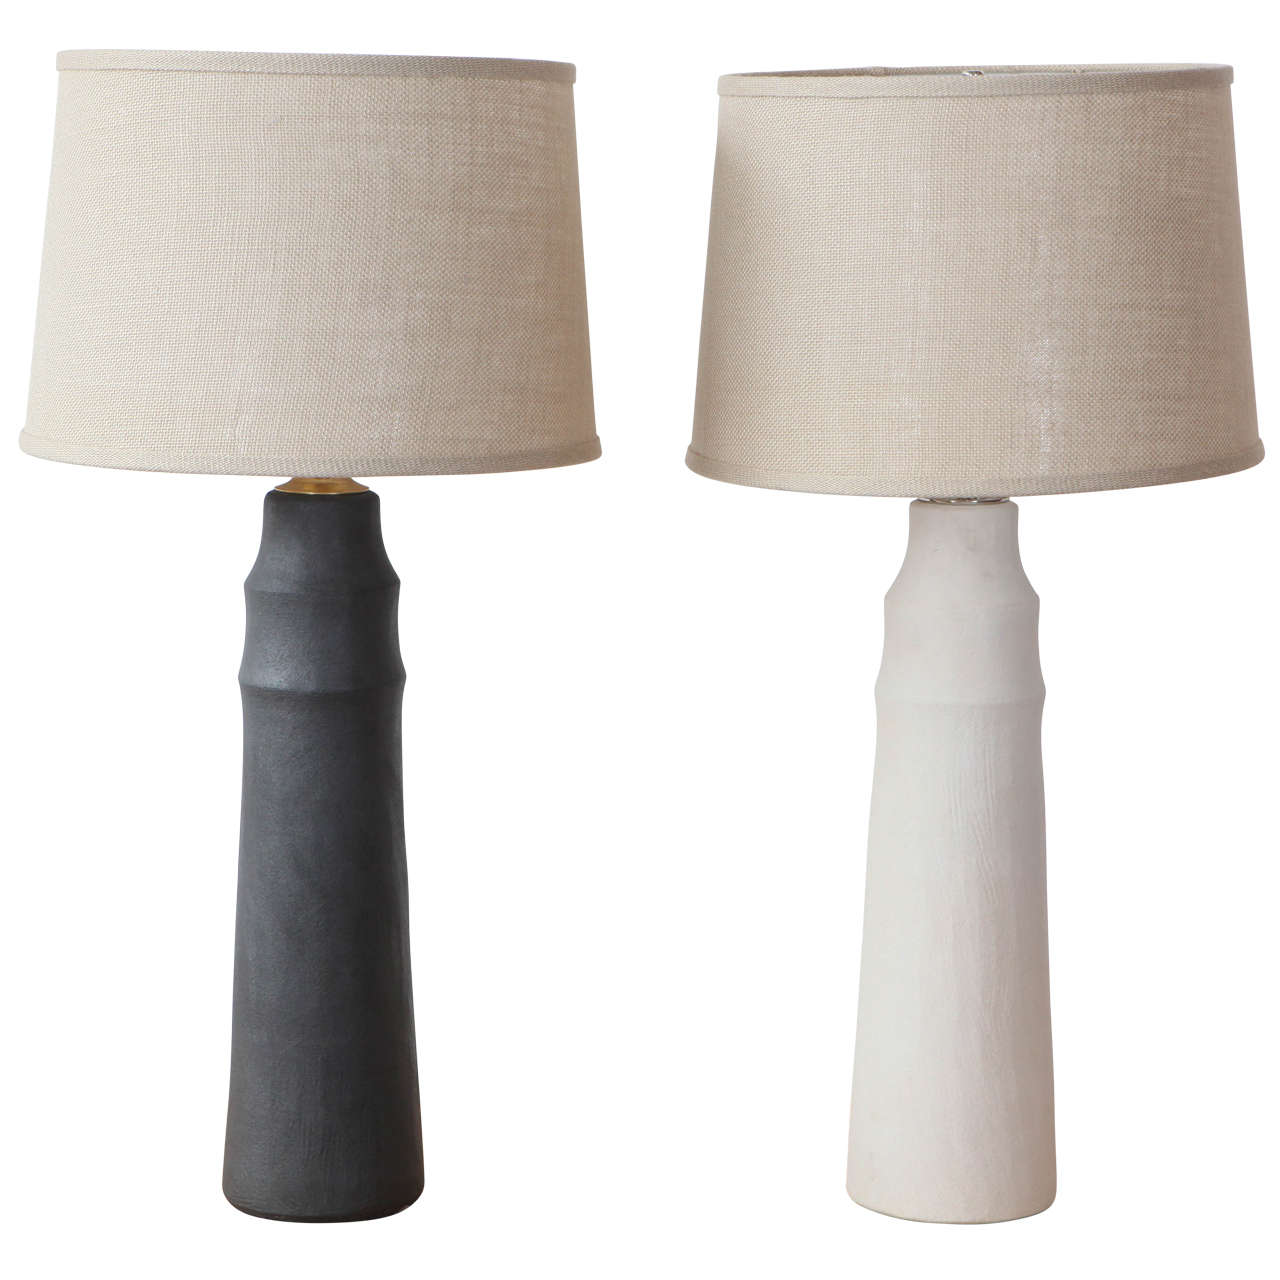 Mirena Kim Handmade Ceramic Table Lamps 1